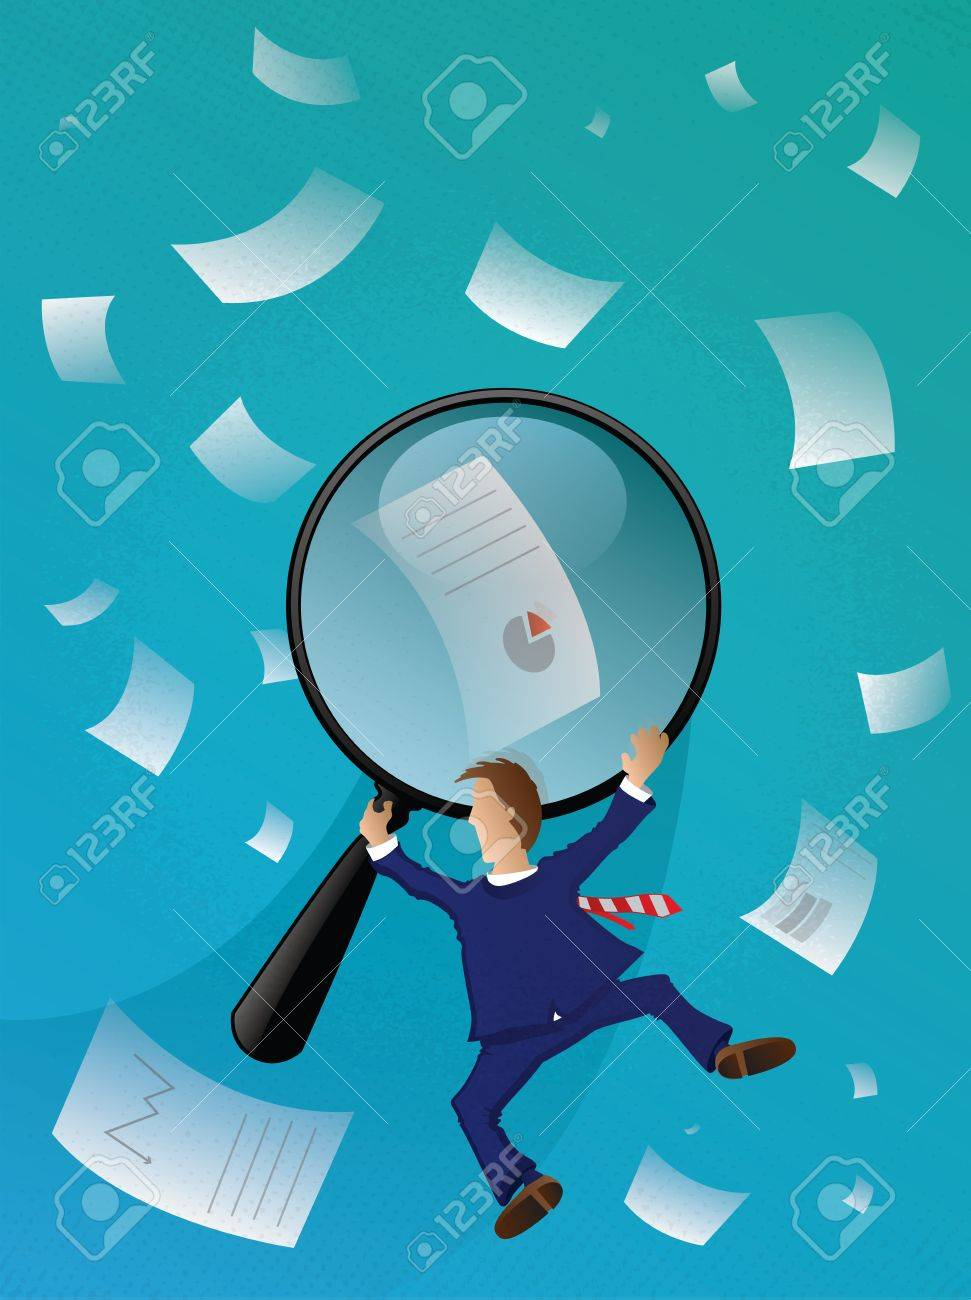 Business Man Searching Stock Vector - 14992812